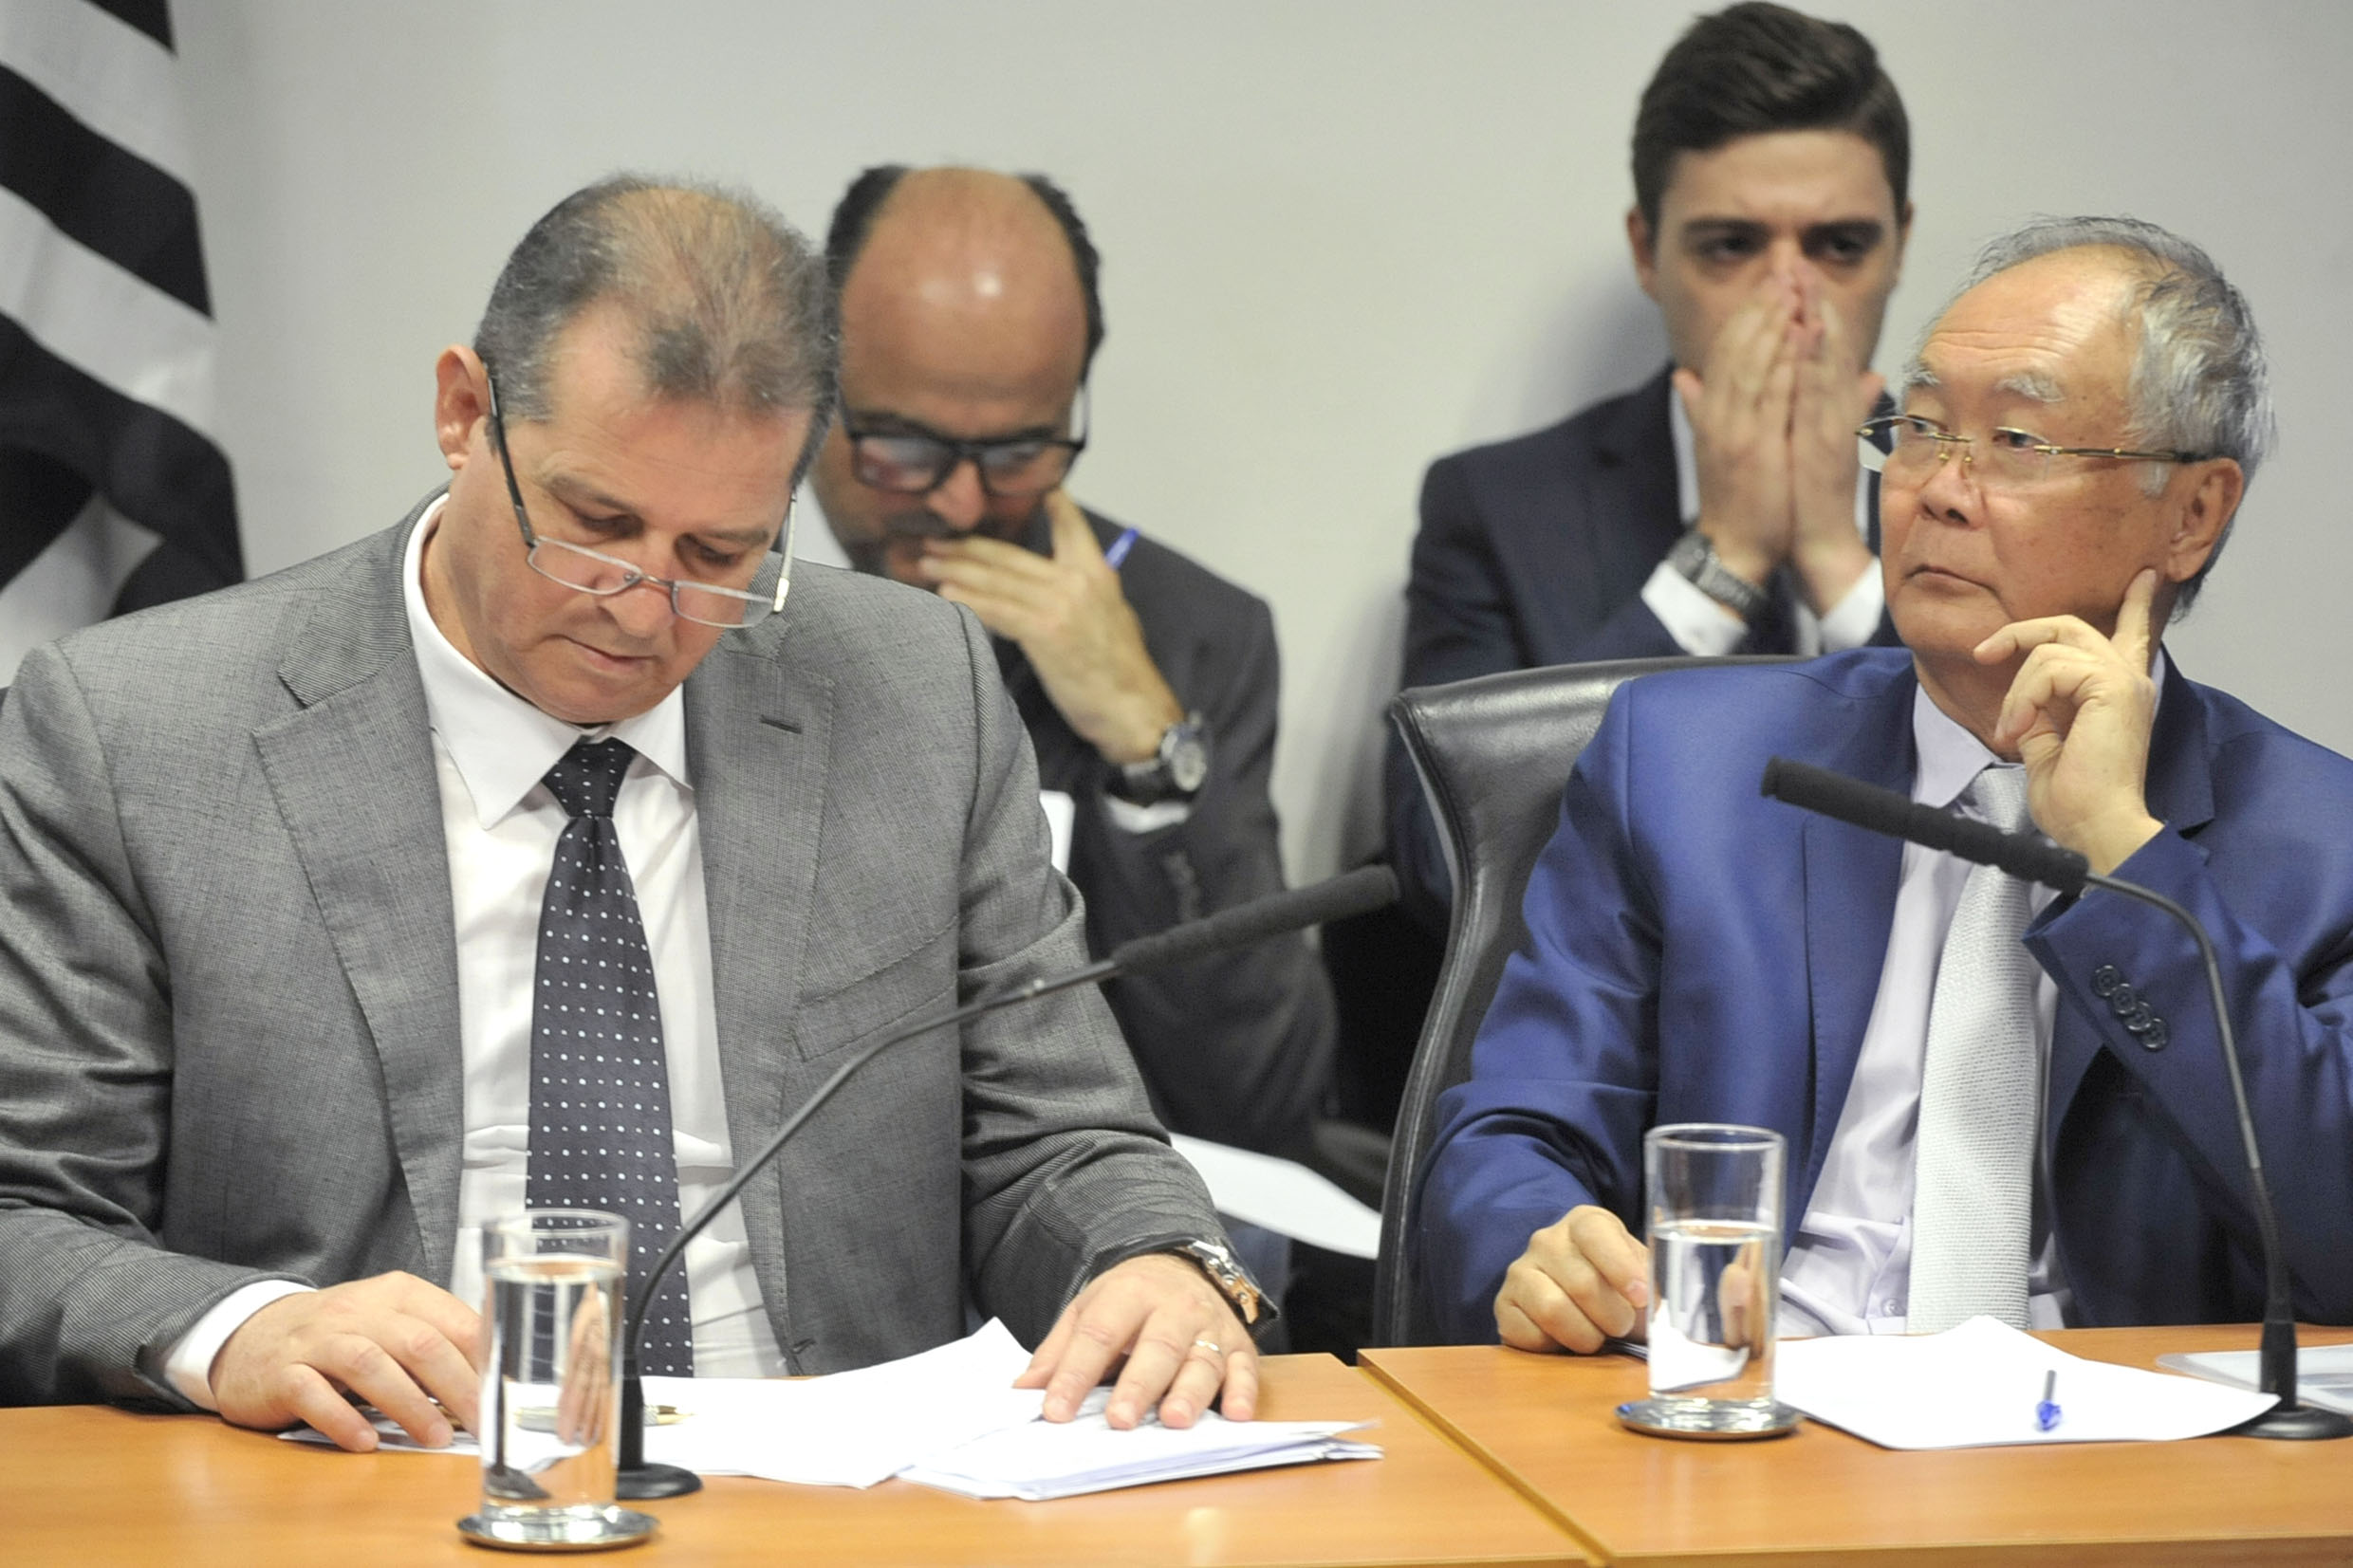 Parlamentares na comissão<a style='float:right' href='https://www3.al.sp.gov.br/repositorio/noticia/N-06-2019/fg236325.jpg' target=_blank><img src='/_img/material-file-download-white.png' width='14px' alt='Clique para baixar a imagem'></a>